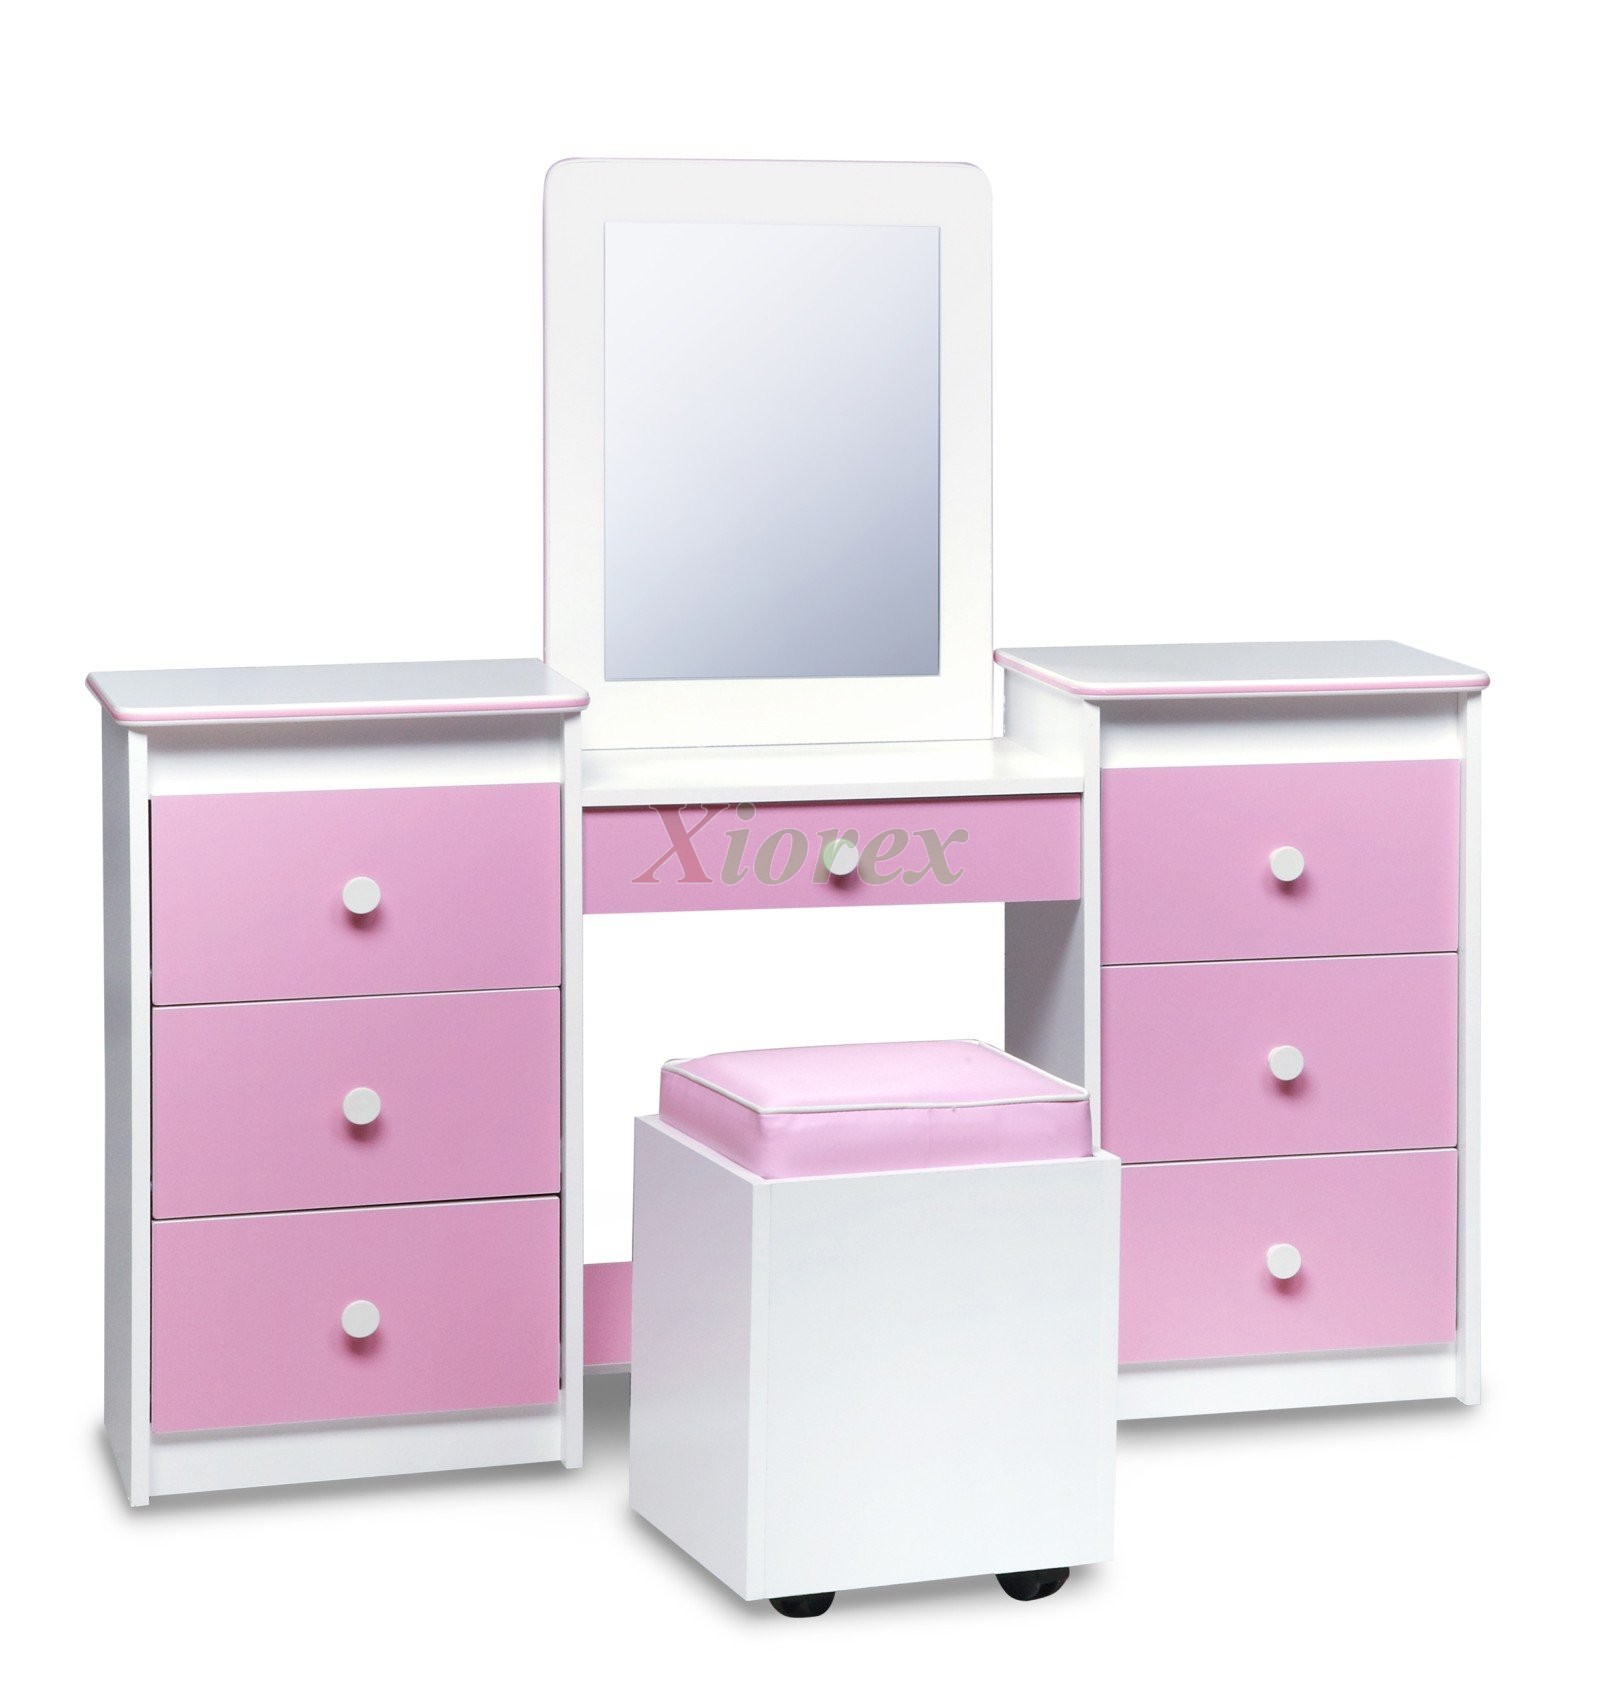 Girls Vanity Set White w Pink Vinyl Fronts Table Seat Mirror by Life Line. Vanity Sets Life Line Tango Bedroom Vanity Table Mirror Seat   Xiorex